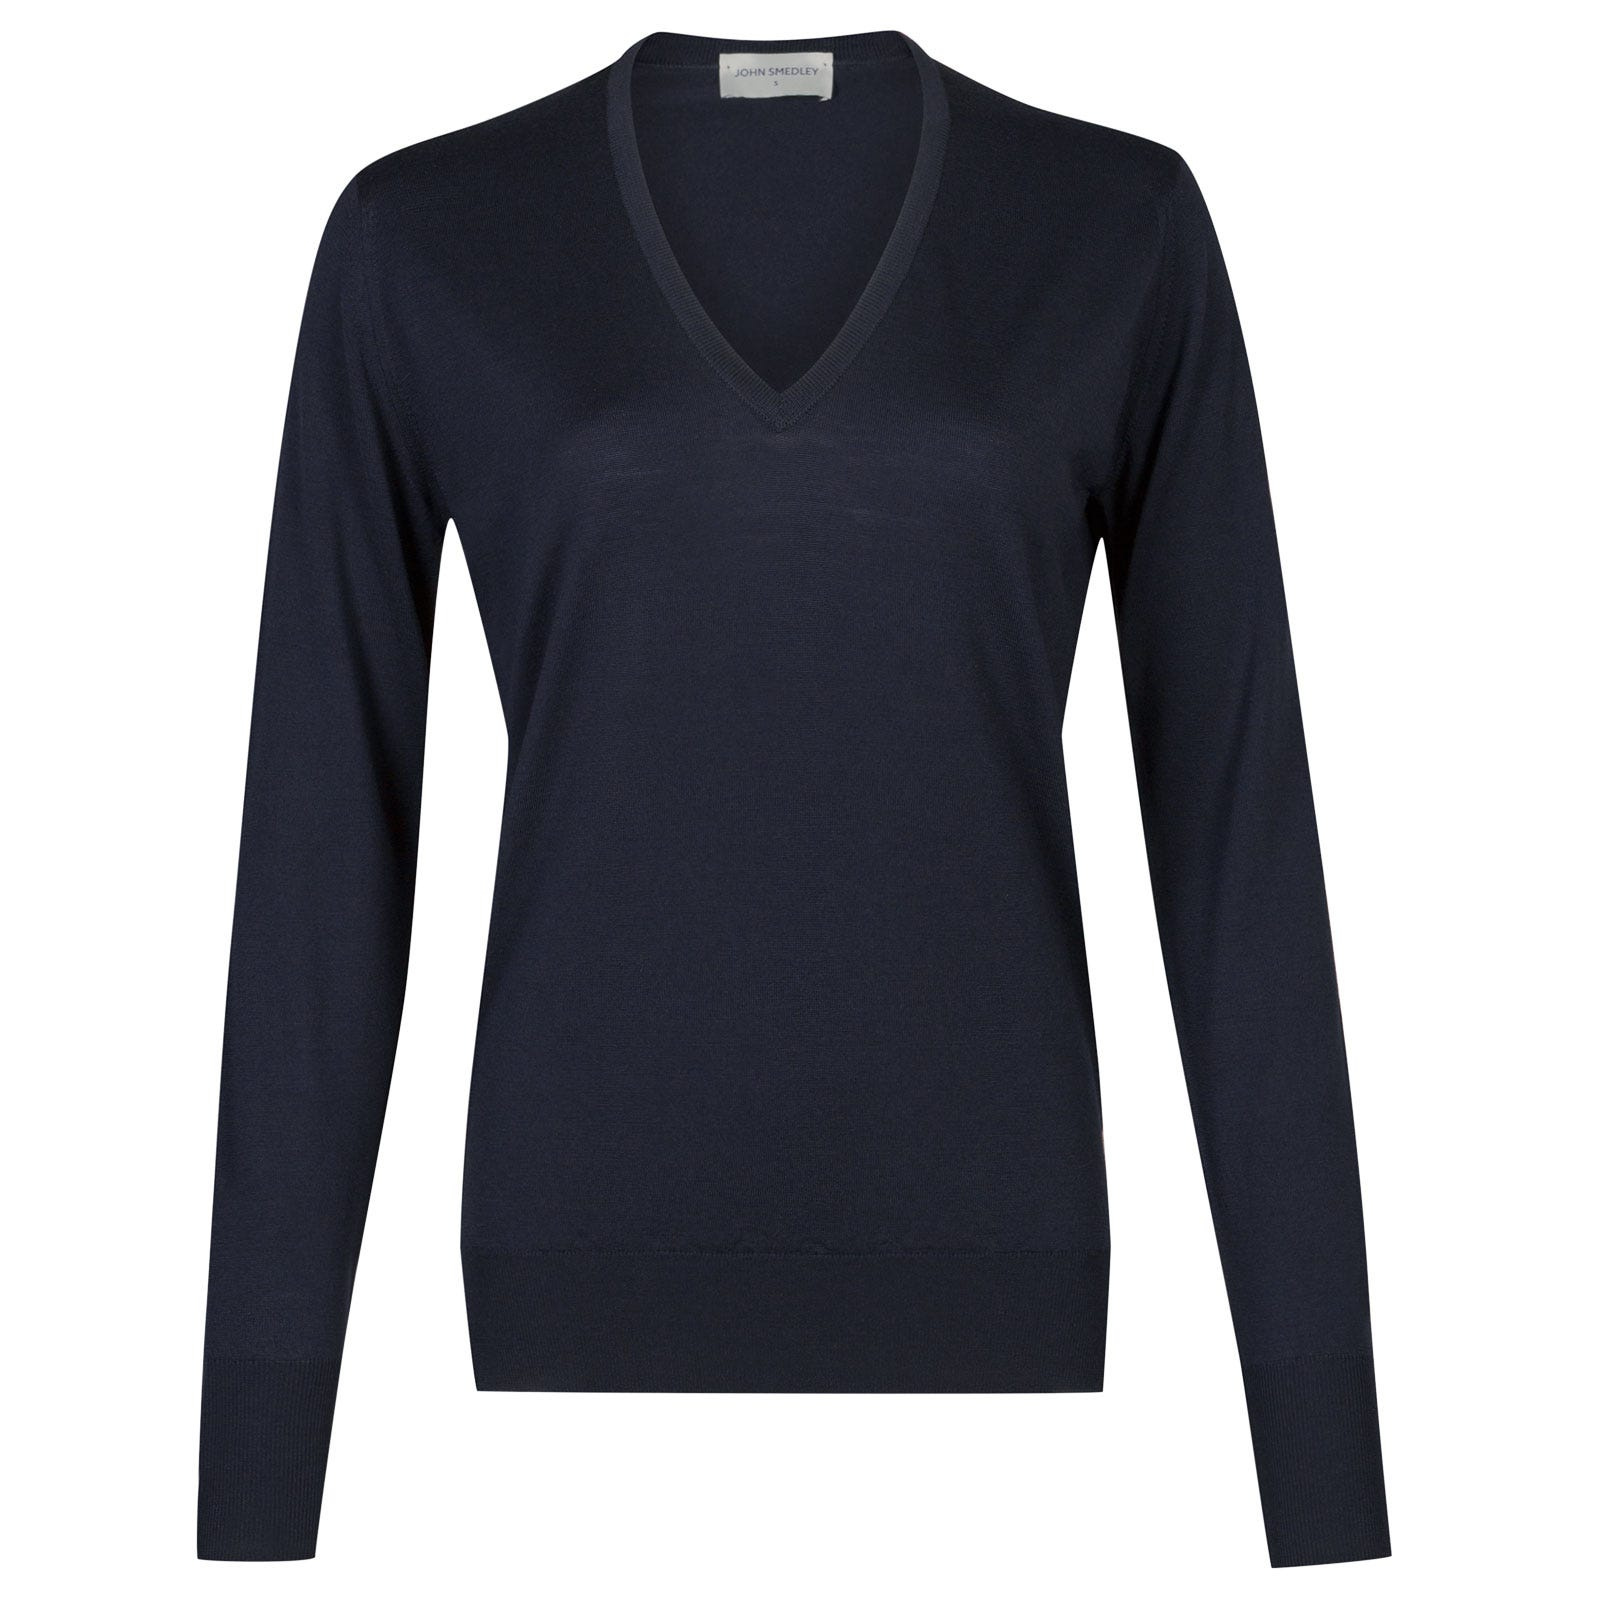 John Smedley Pepin Merino Wool Sweater in Midnight-M